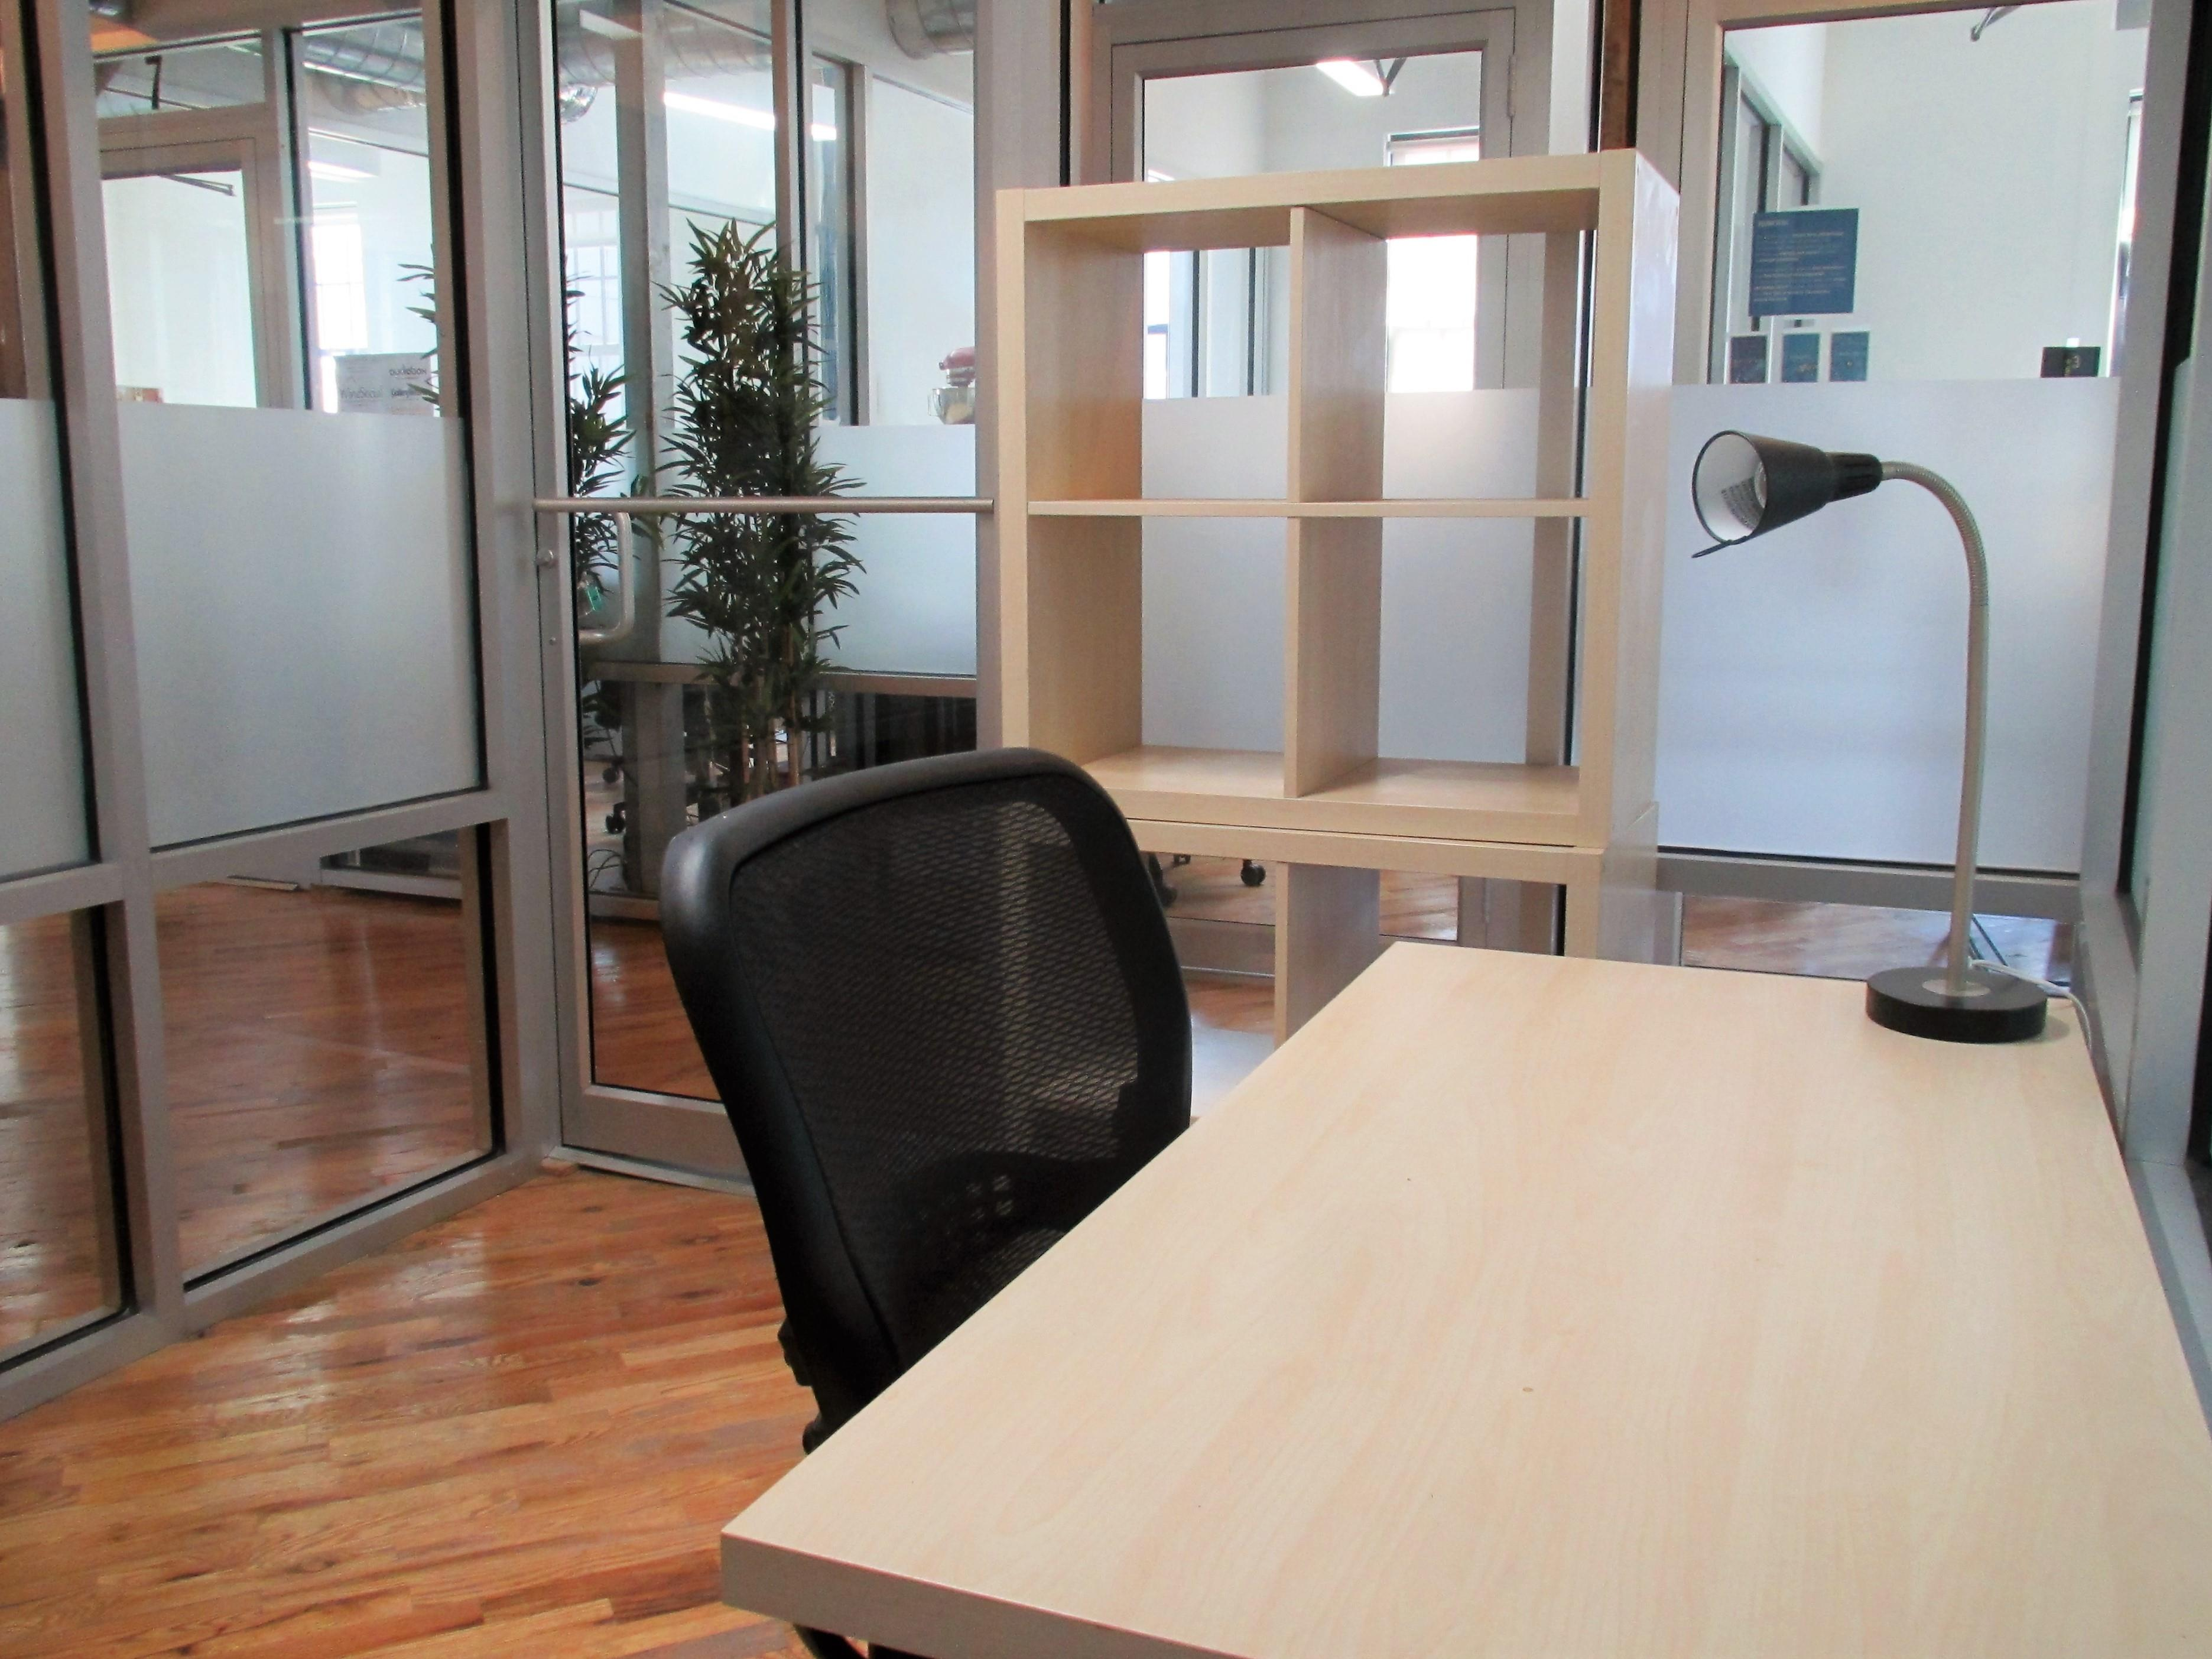 Green Desk - 195 Plymouth Street - Spacious Private Office in DUMBO! (Copy)